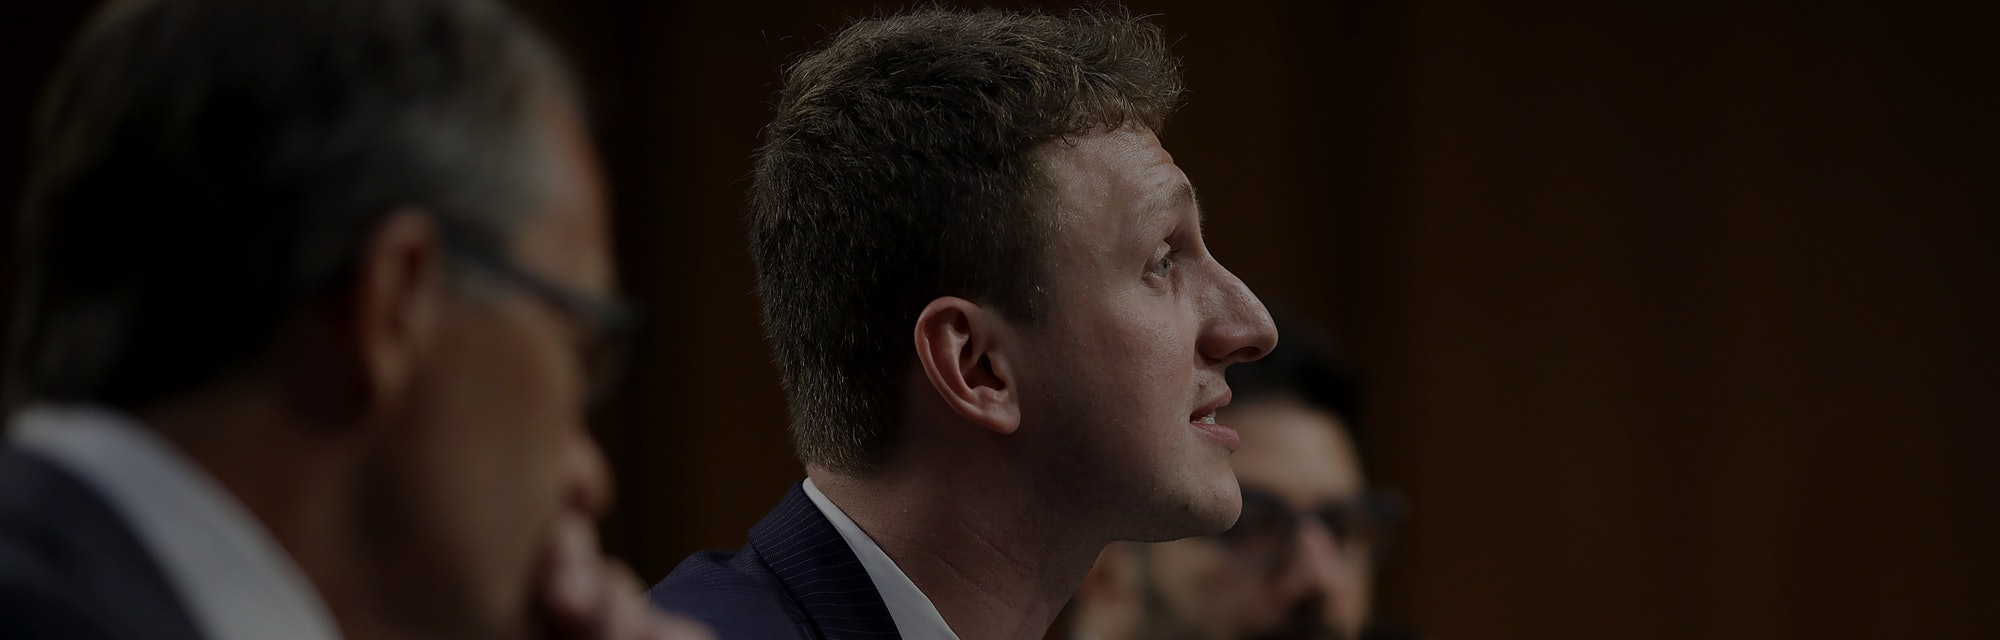 Facebook's Cambridge Analytica scandal cost it $5 billion.